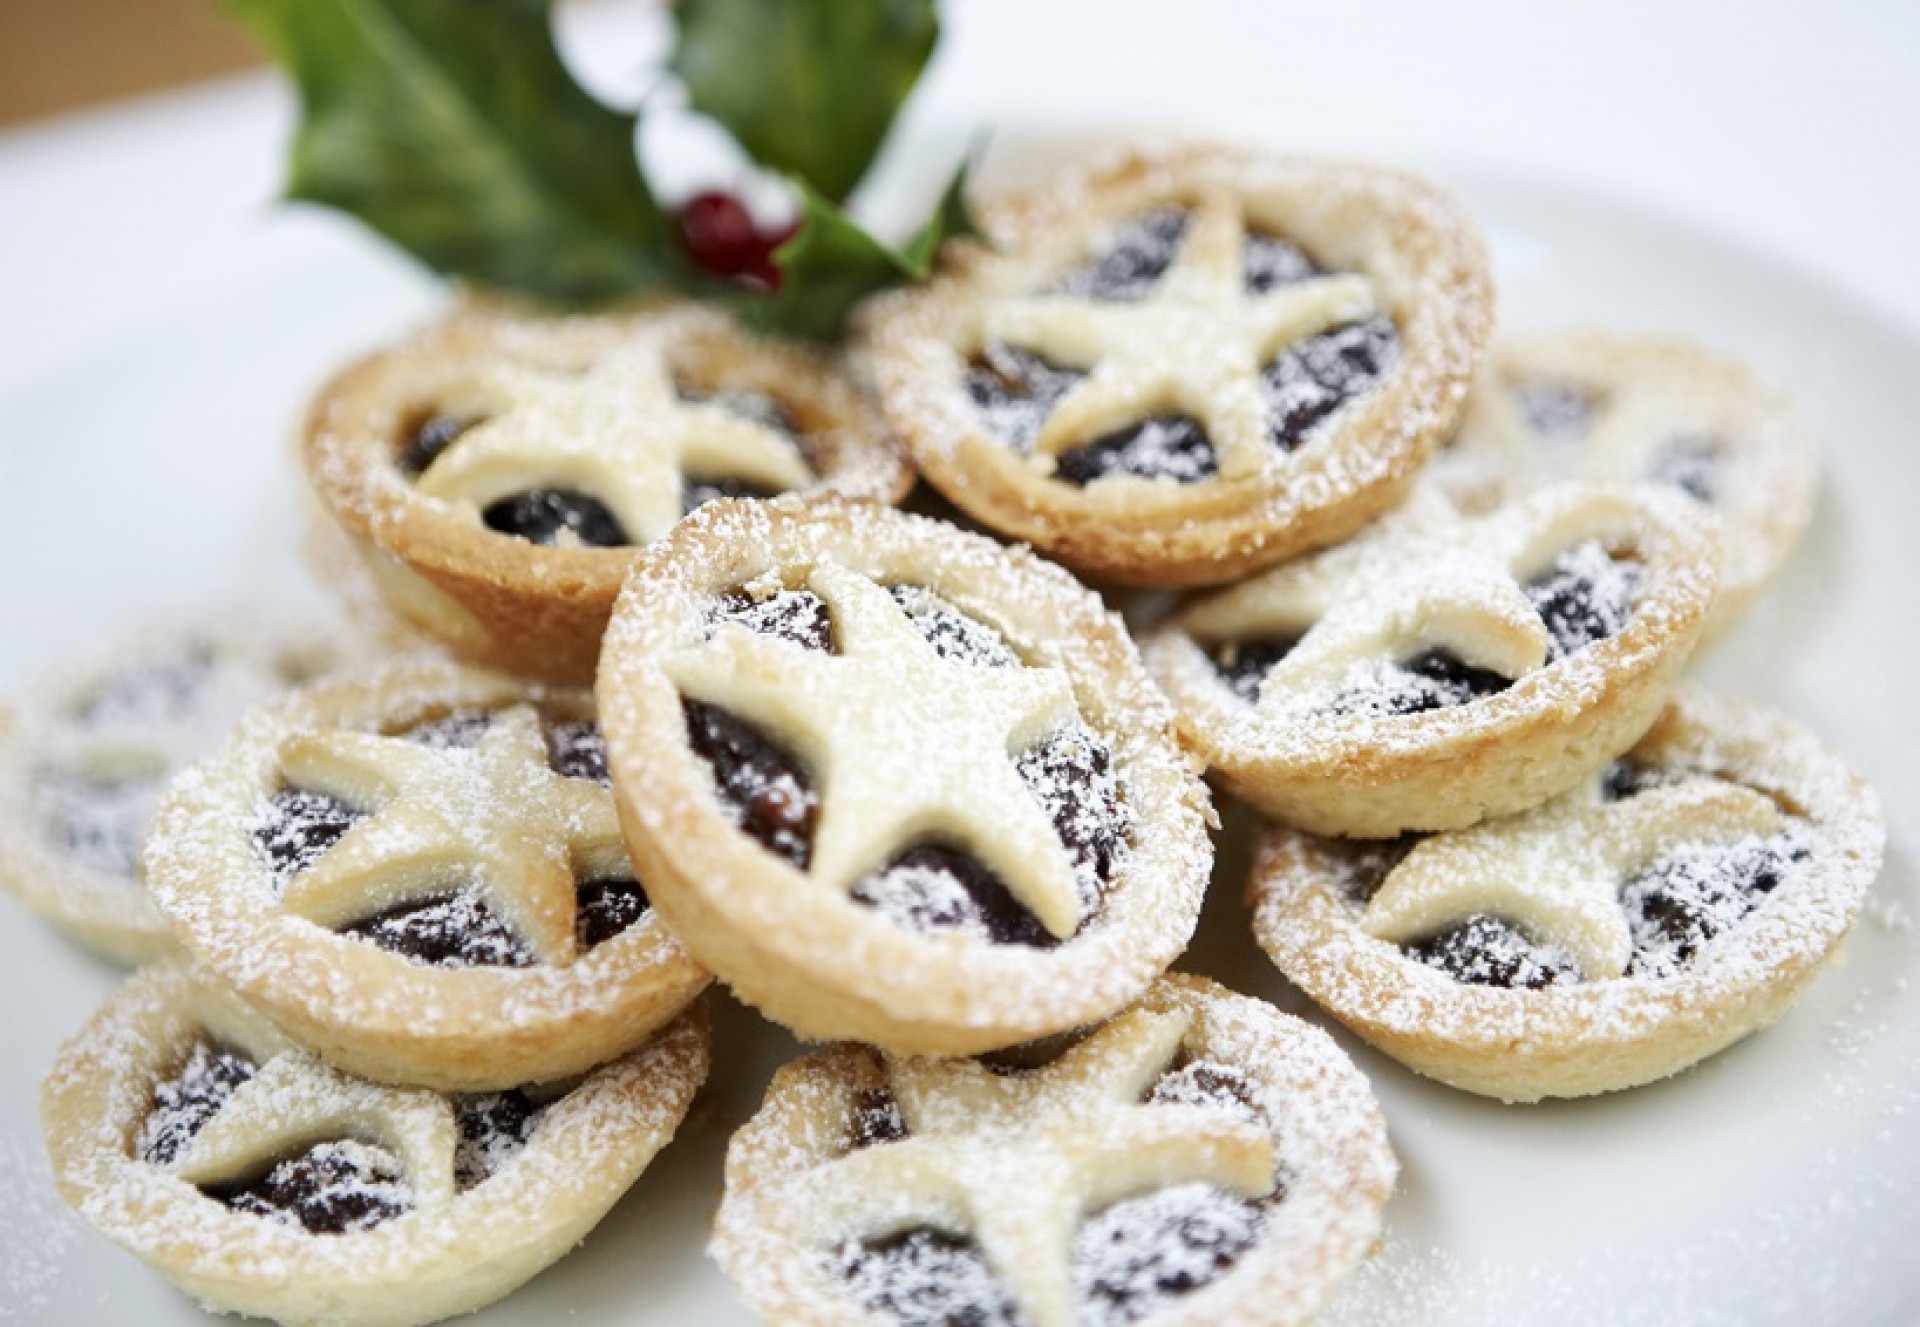 Mince Pie Day 2019